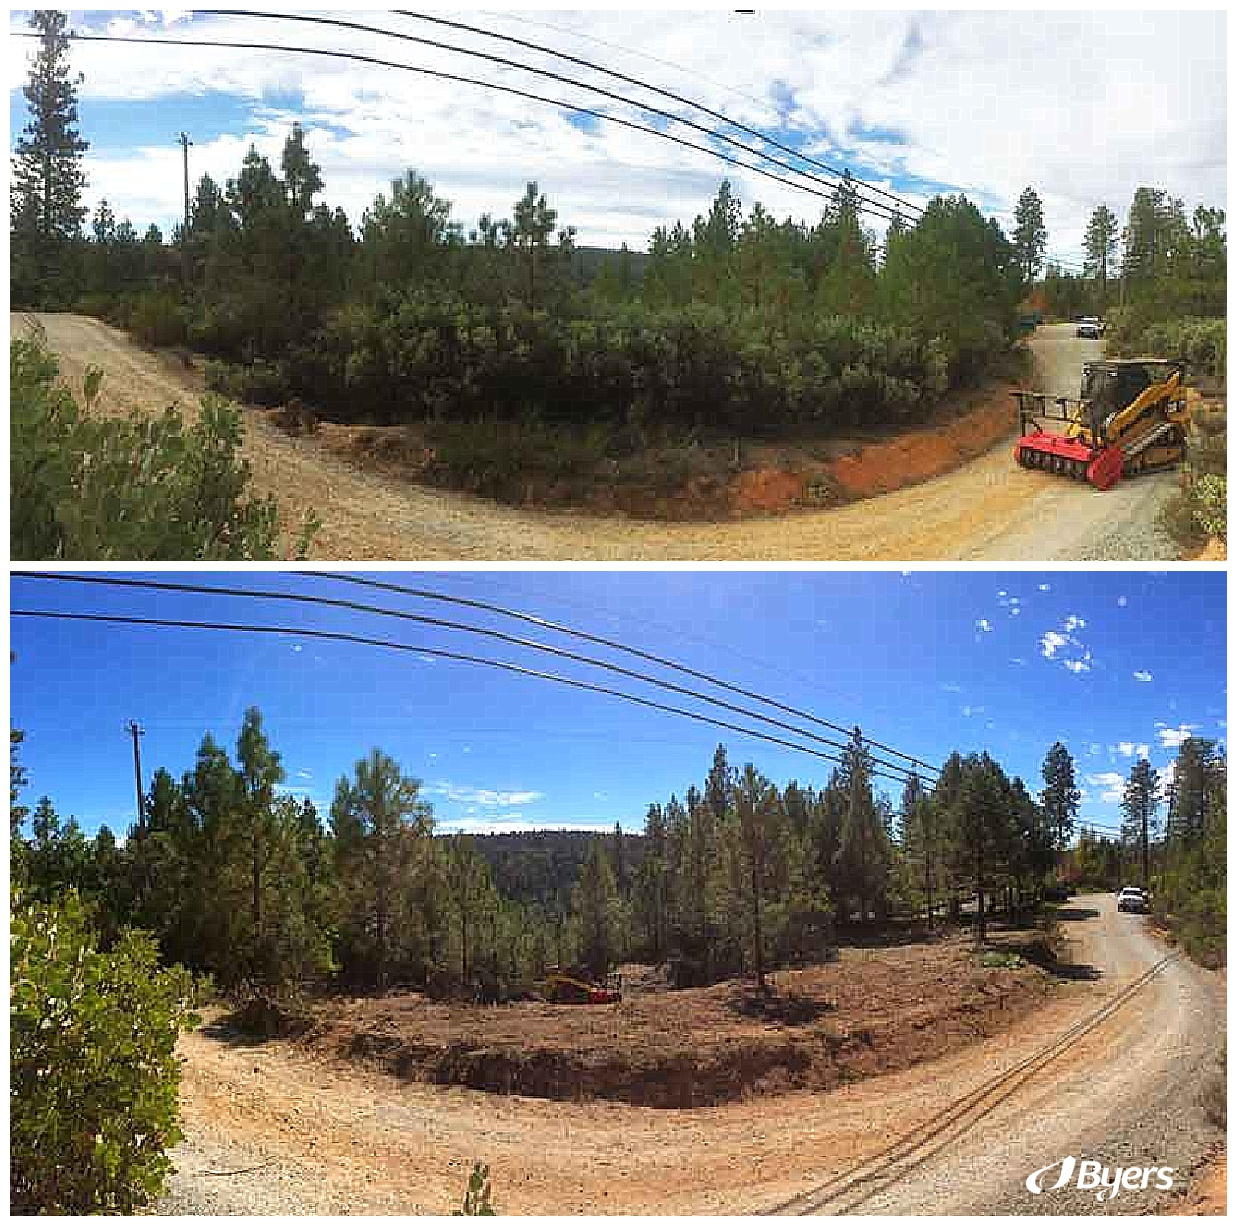 Land Clearing & Wildfire Prevention | Before and After | Defensible space